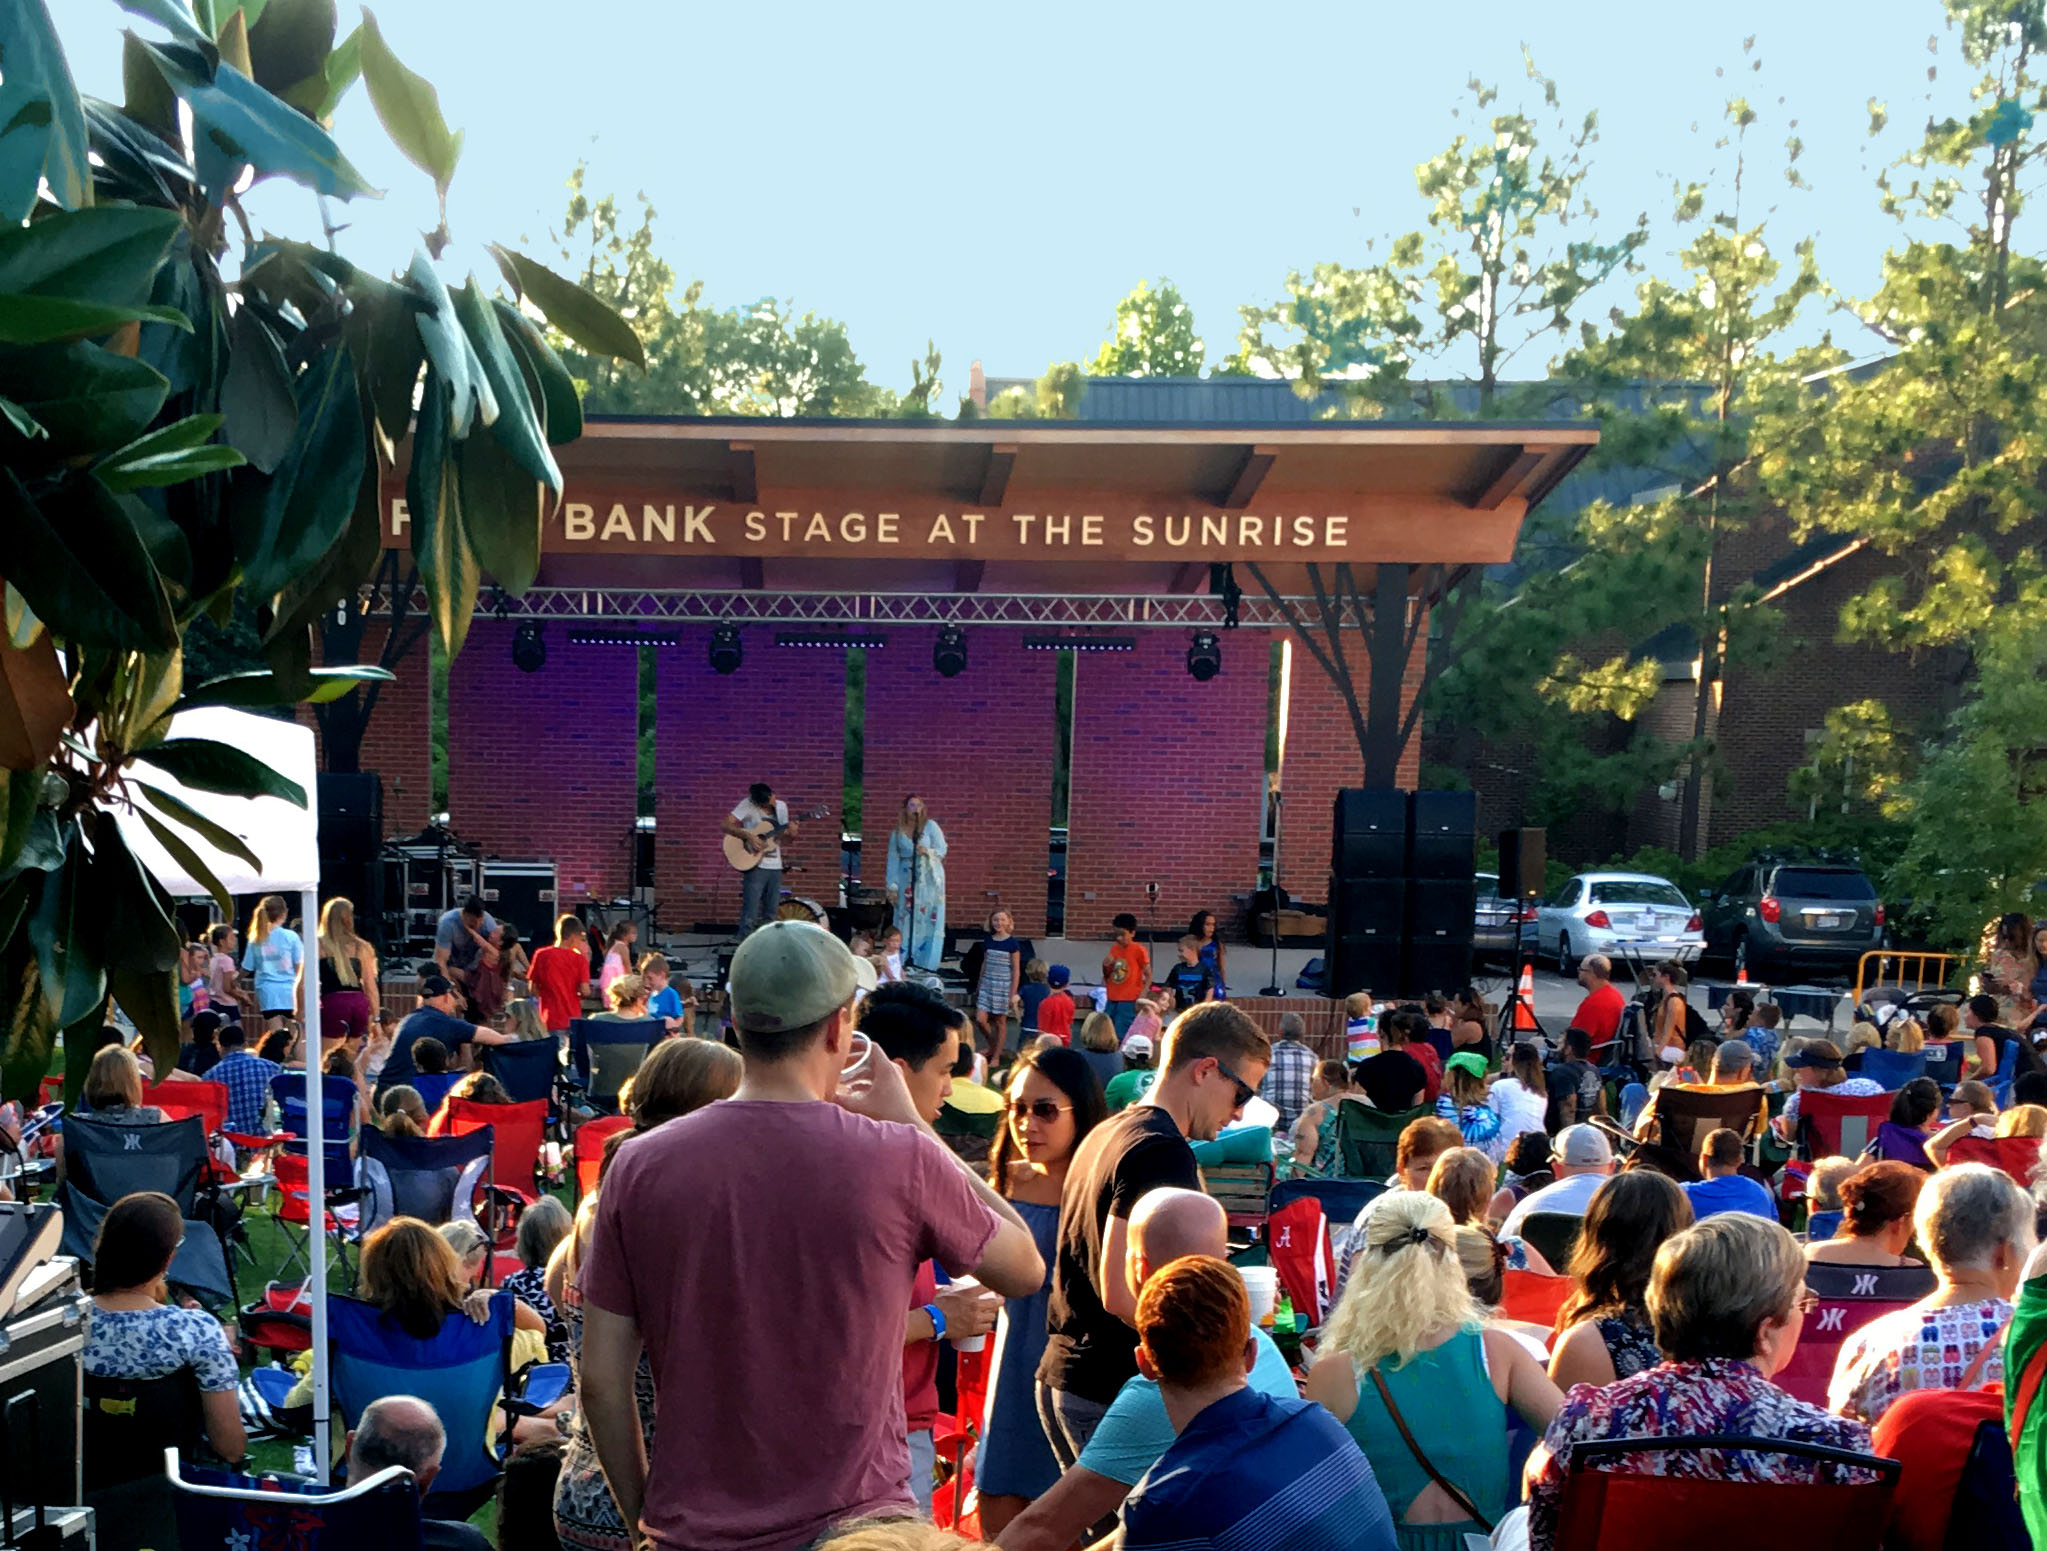 Photo of the outdoor stage at the sunrise theater with people listening to music